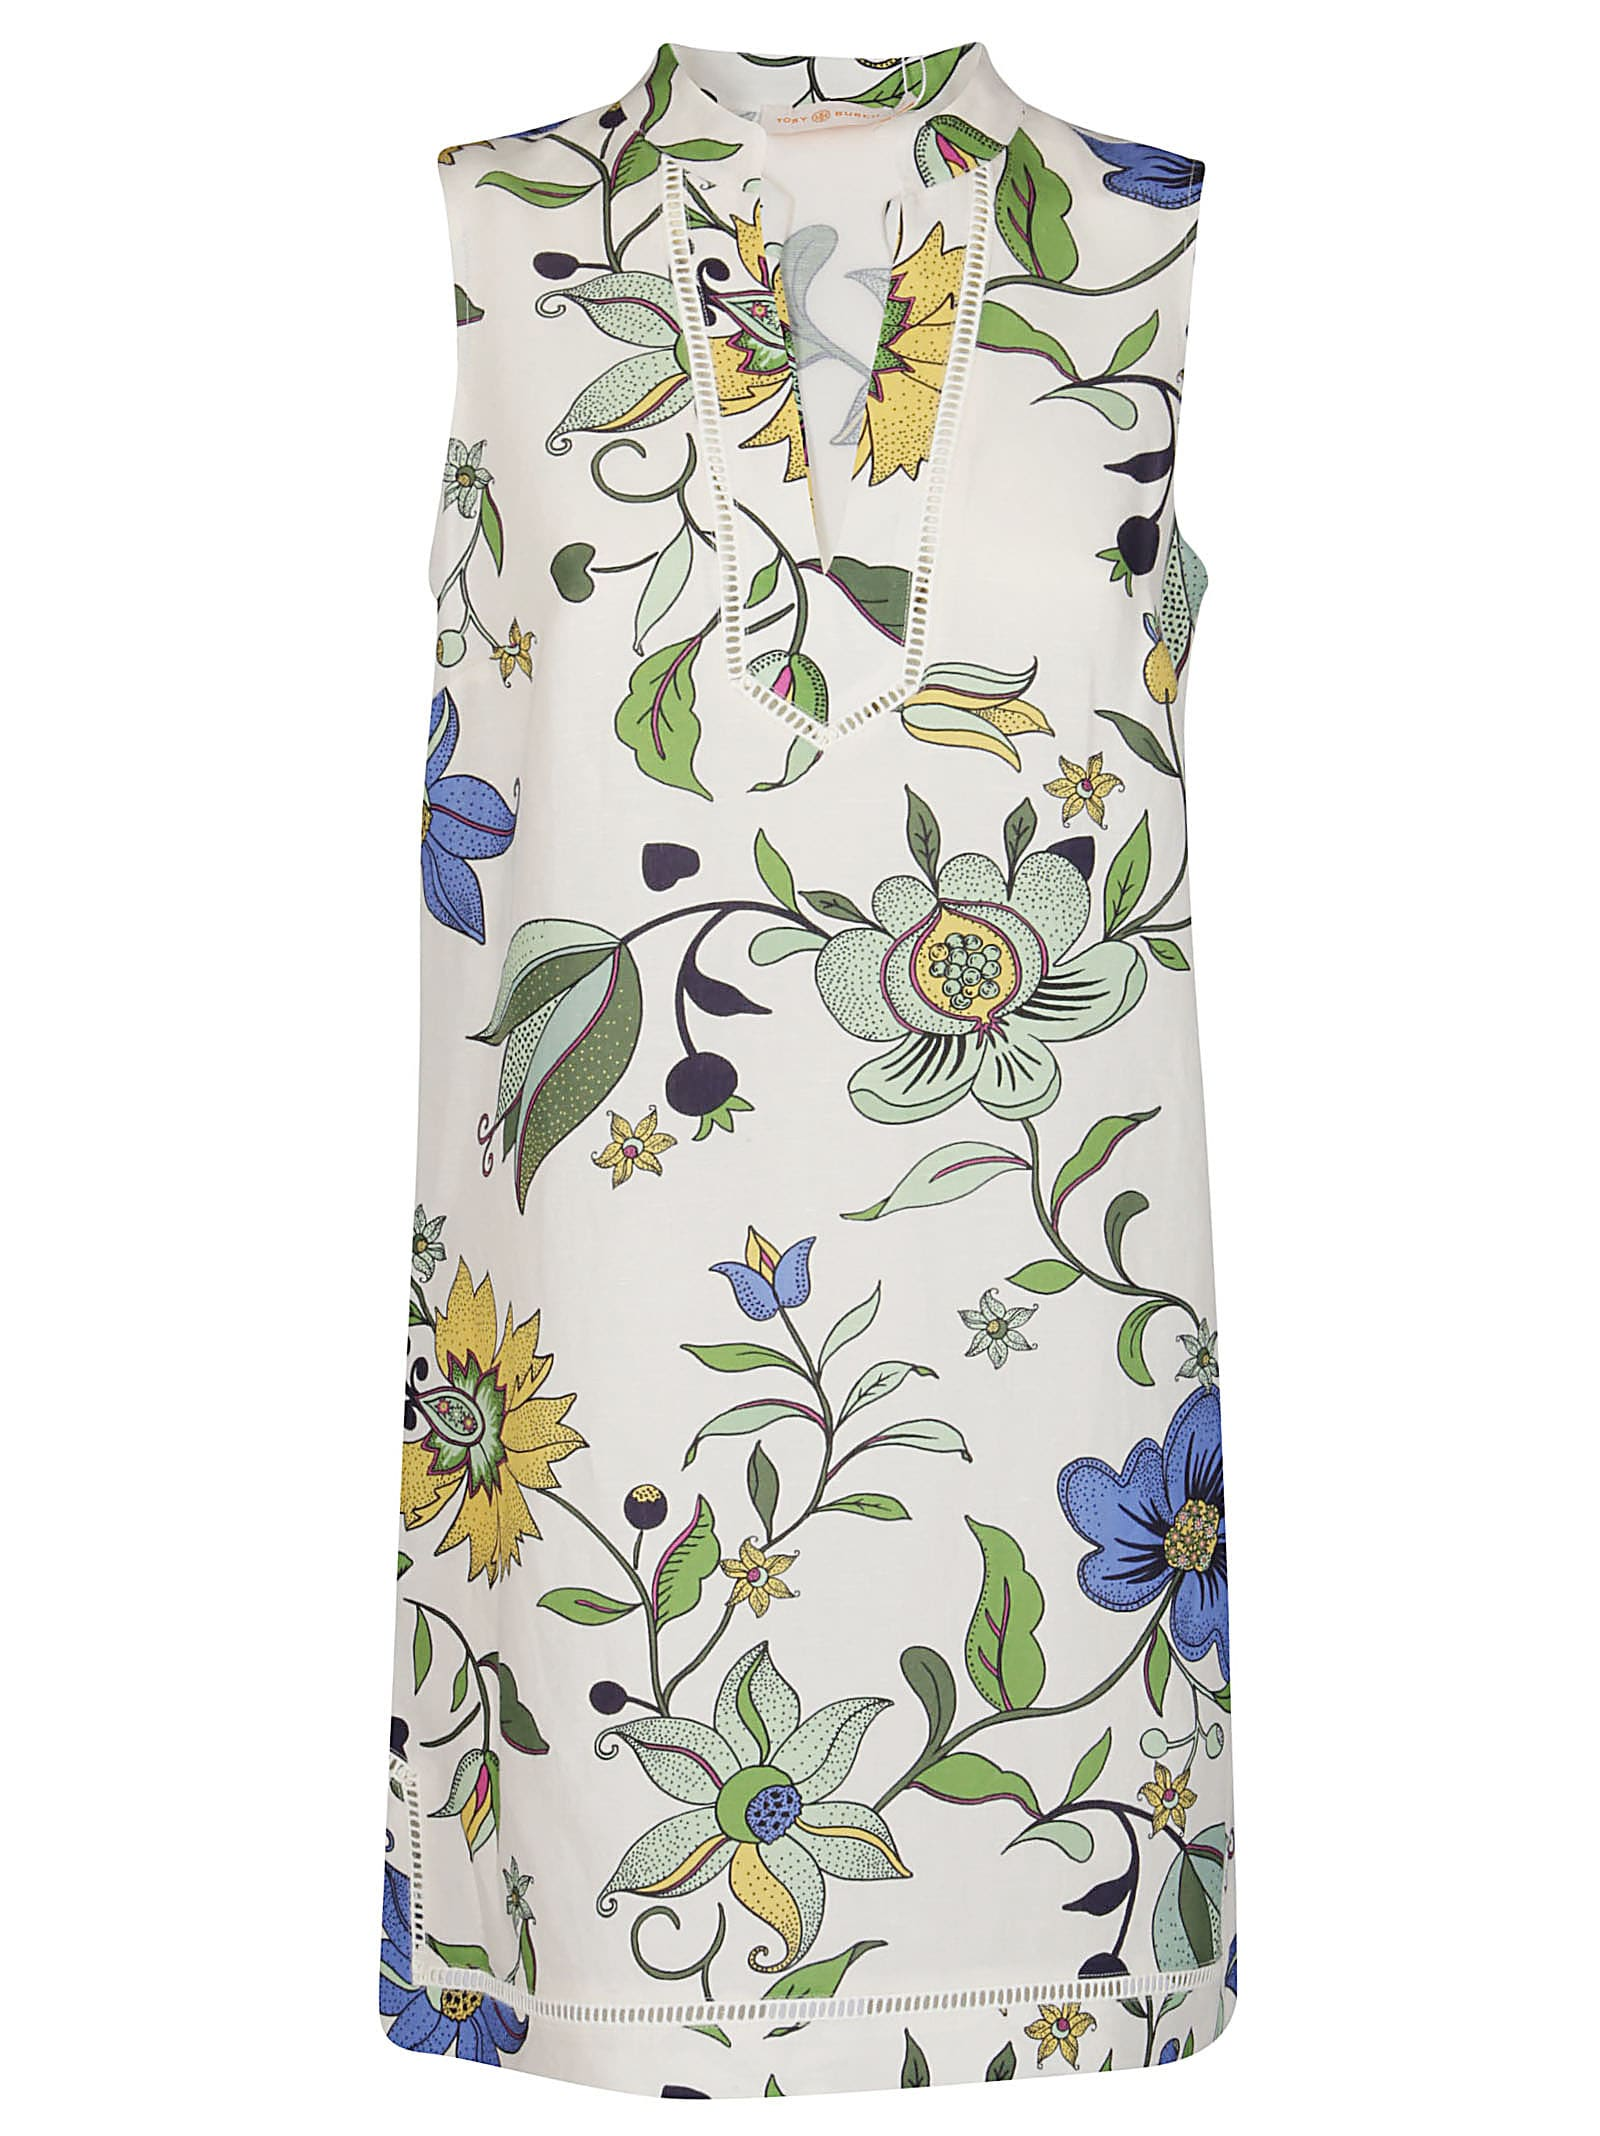 Buy Tory Burch Floral Print Mini Dress online, shop Tory Burch with free shipping